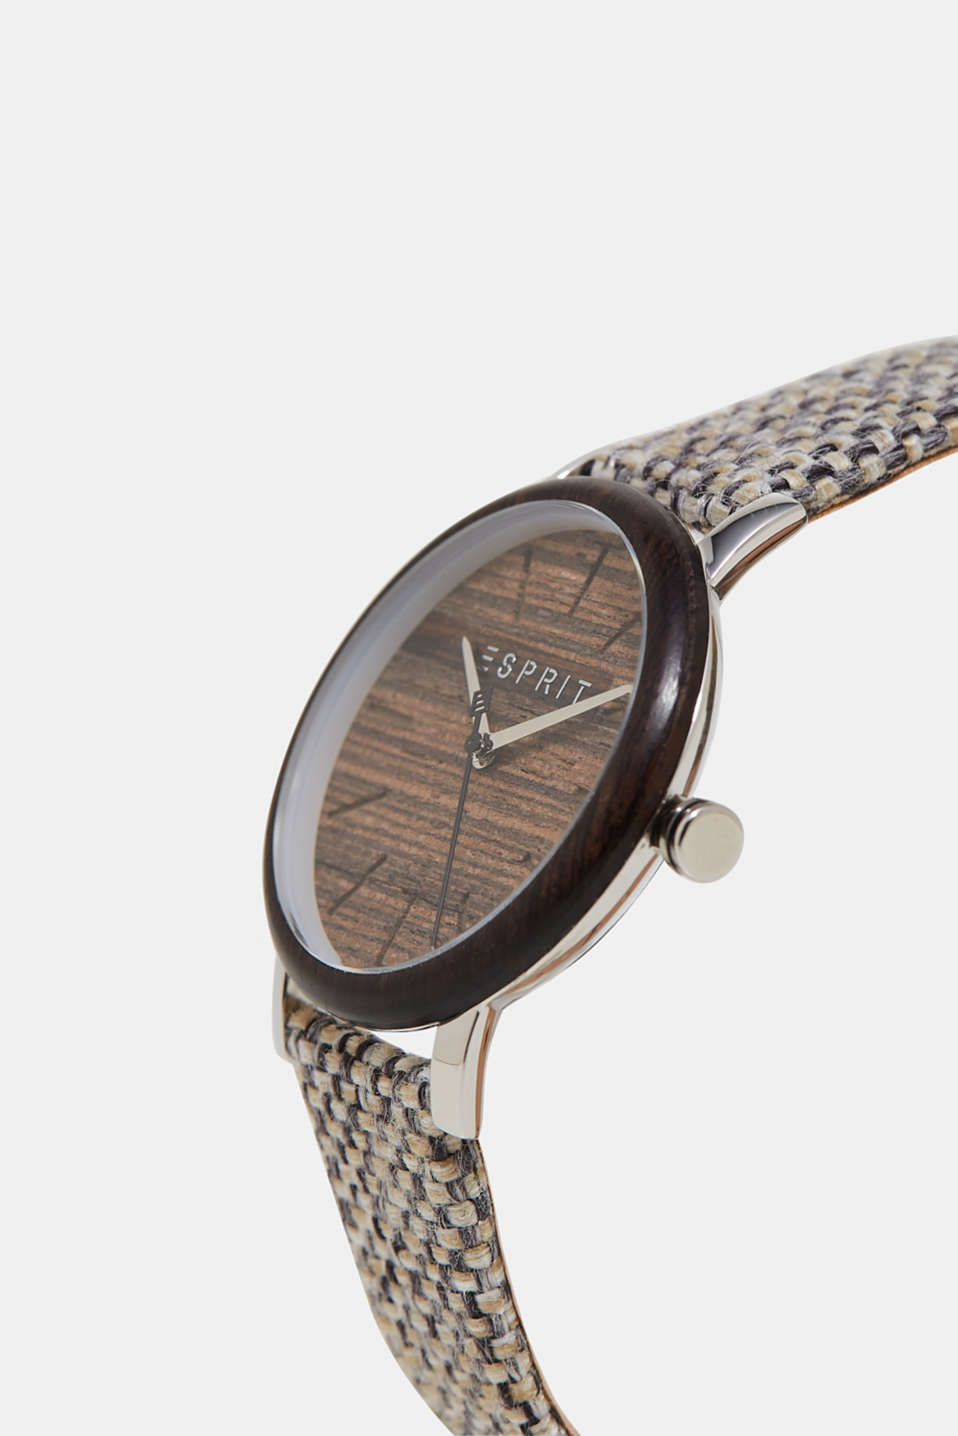 Watch with a wooden trim and woven strap